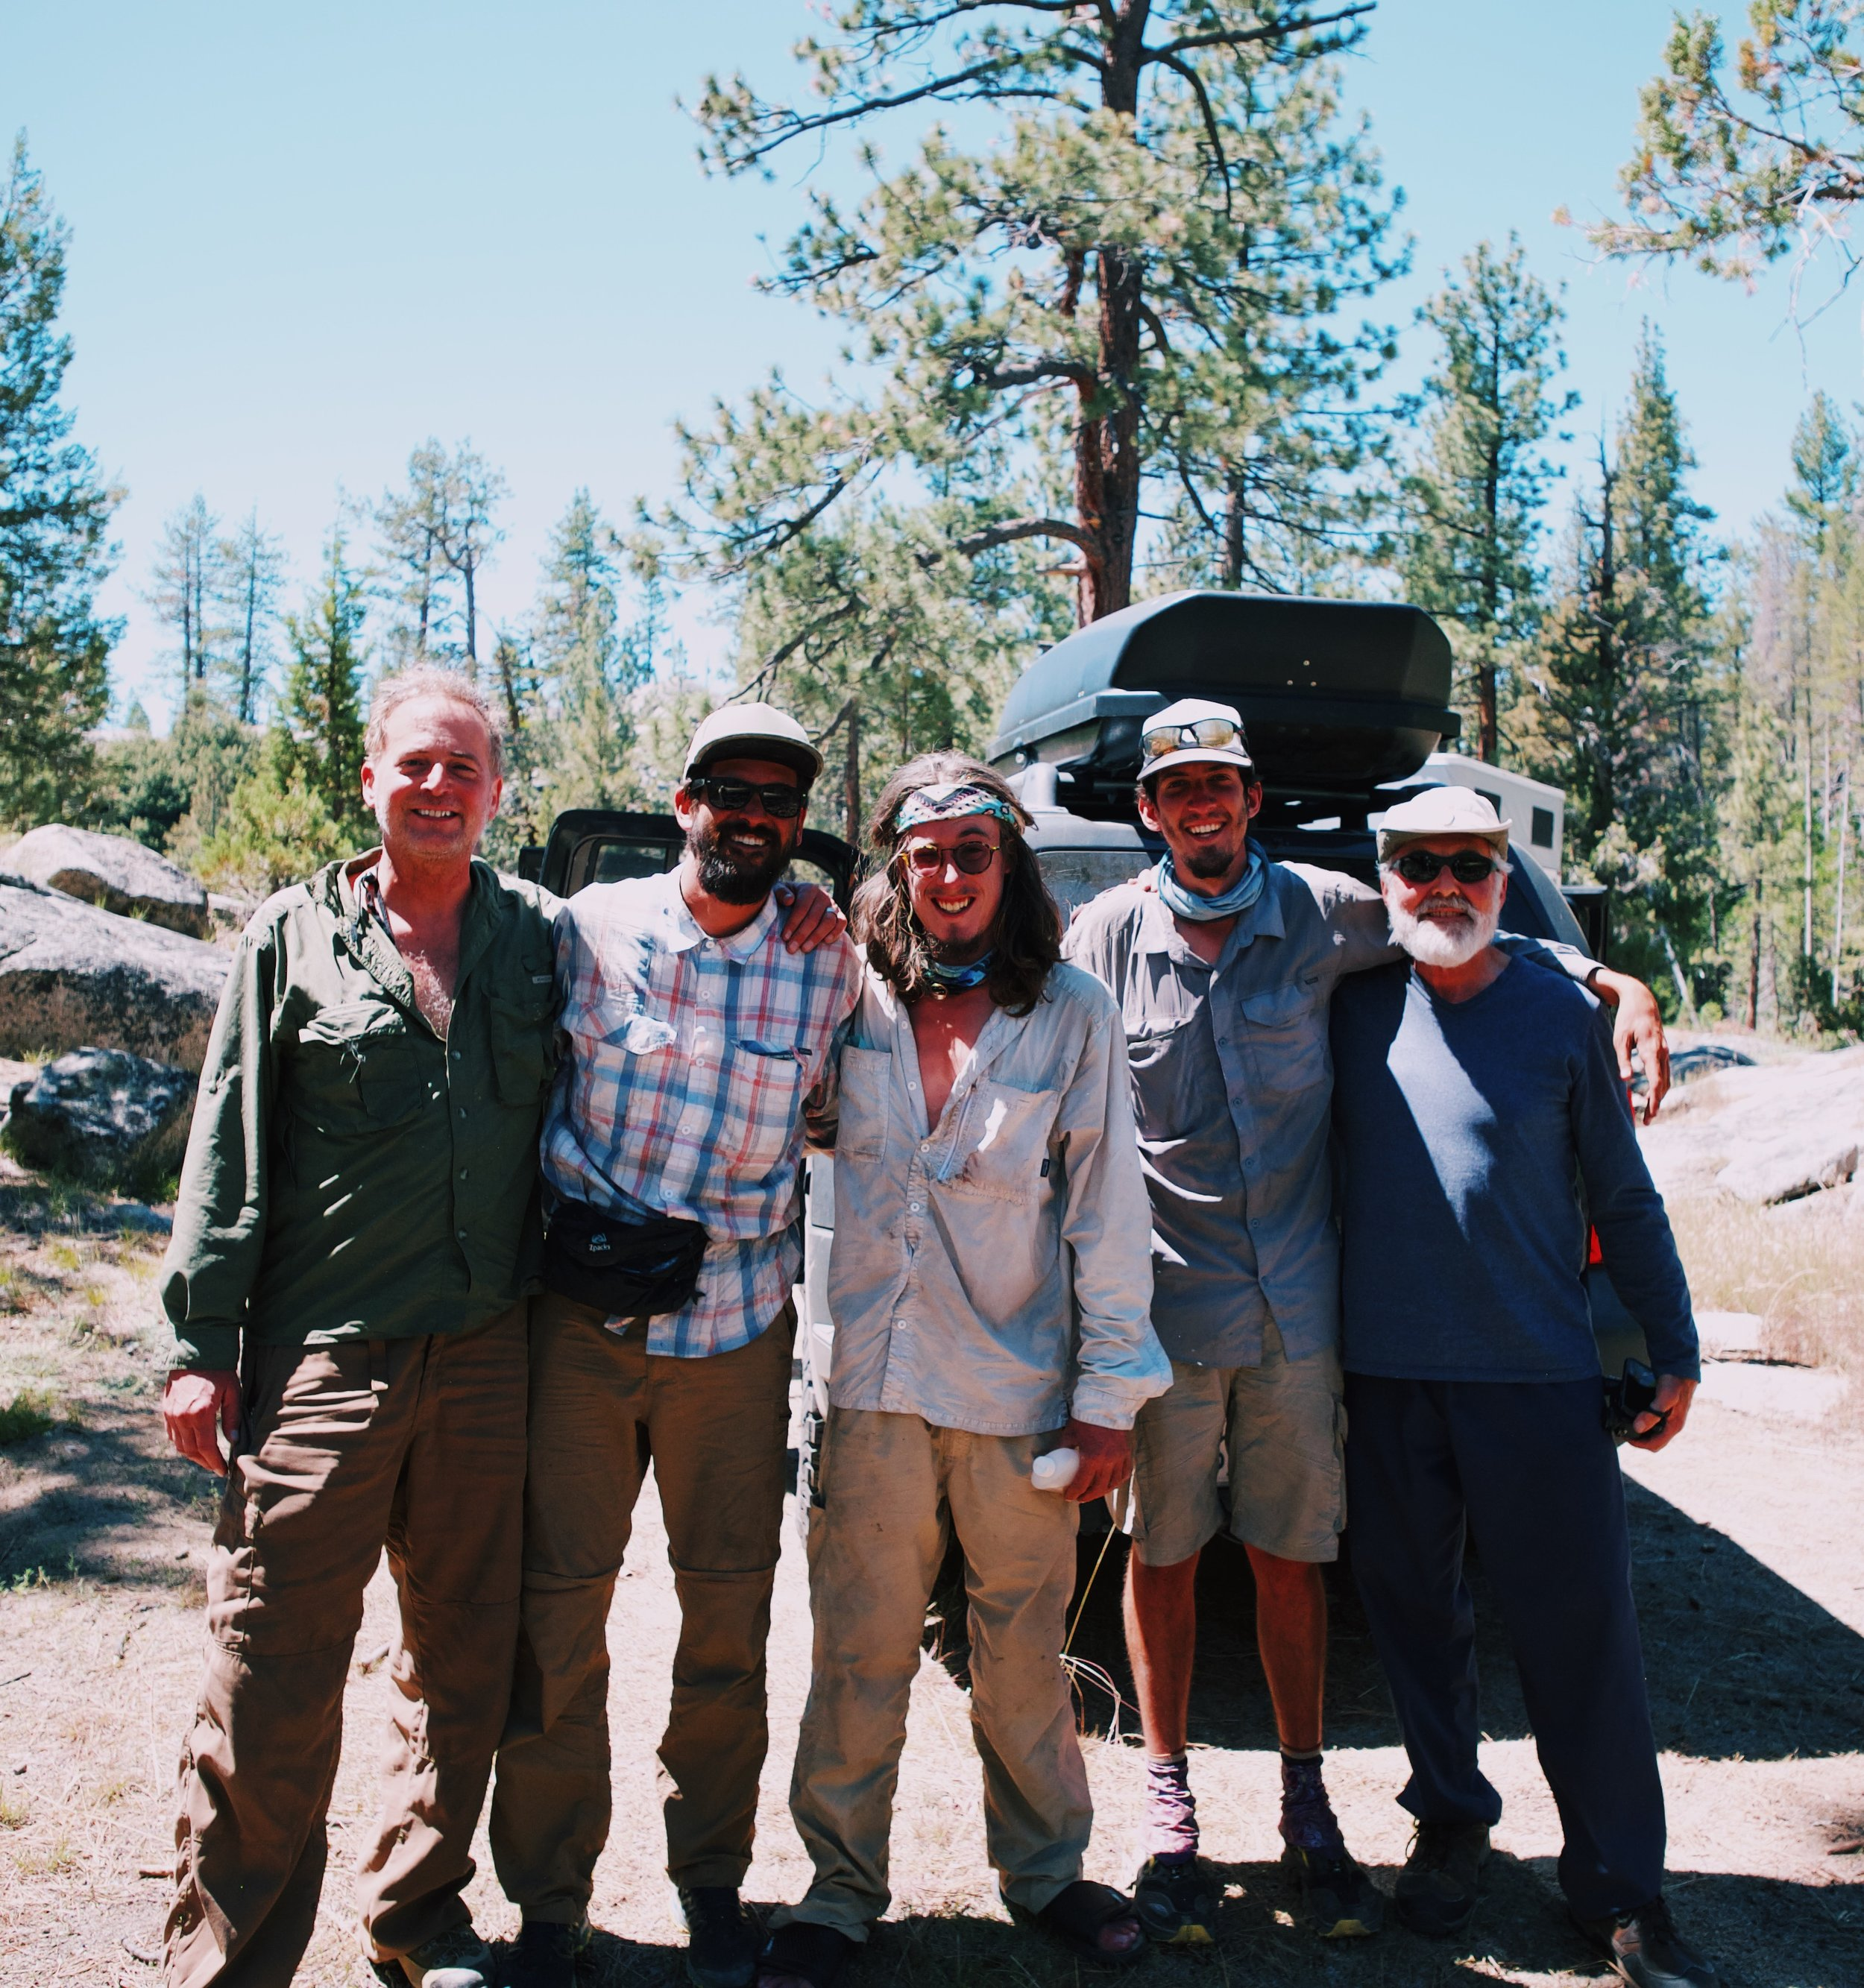 our trail magic: some old professors gave us shots of tequila and a ride to VVR